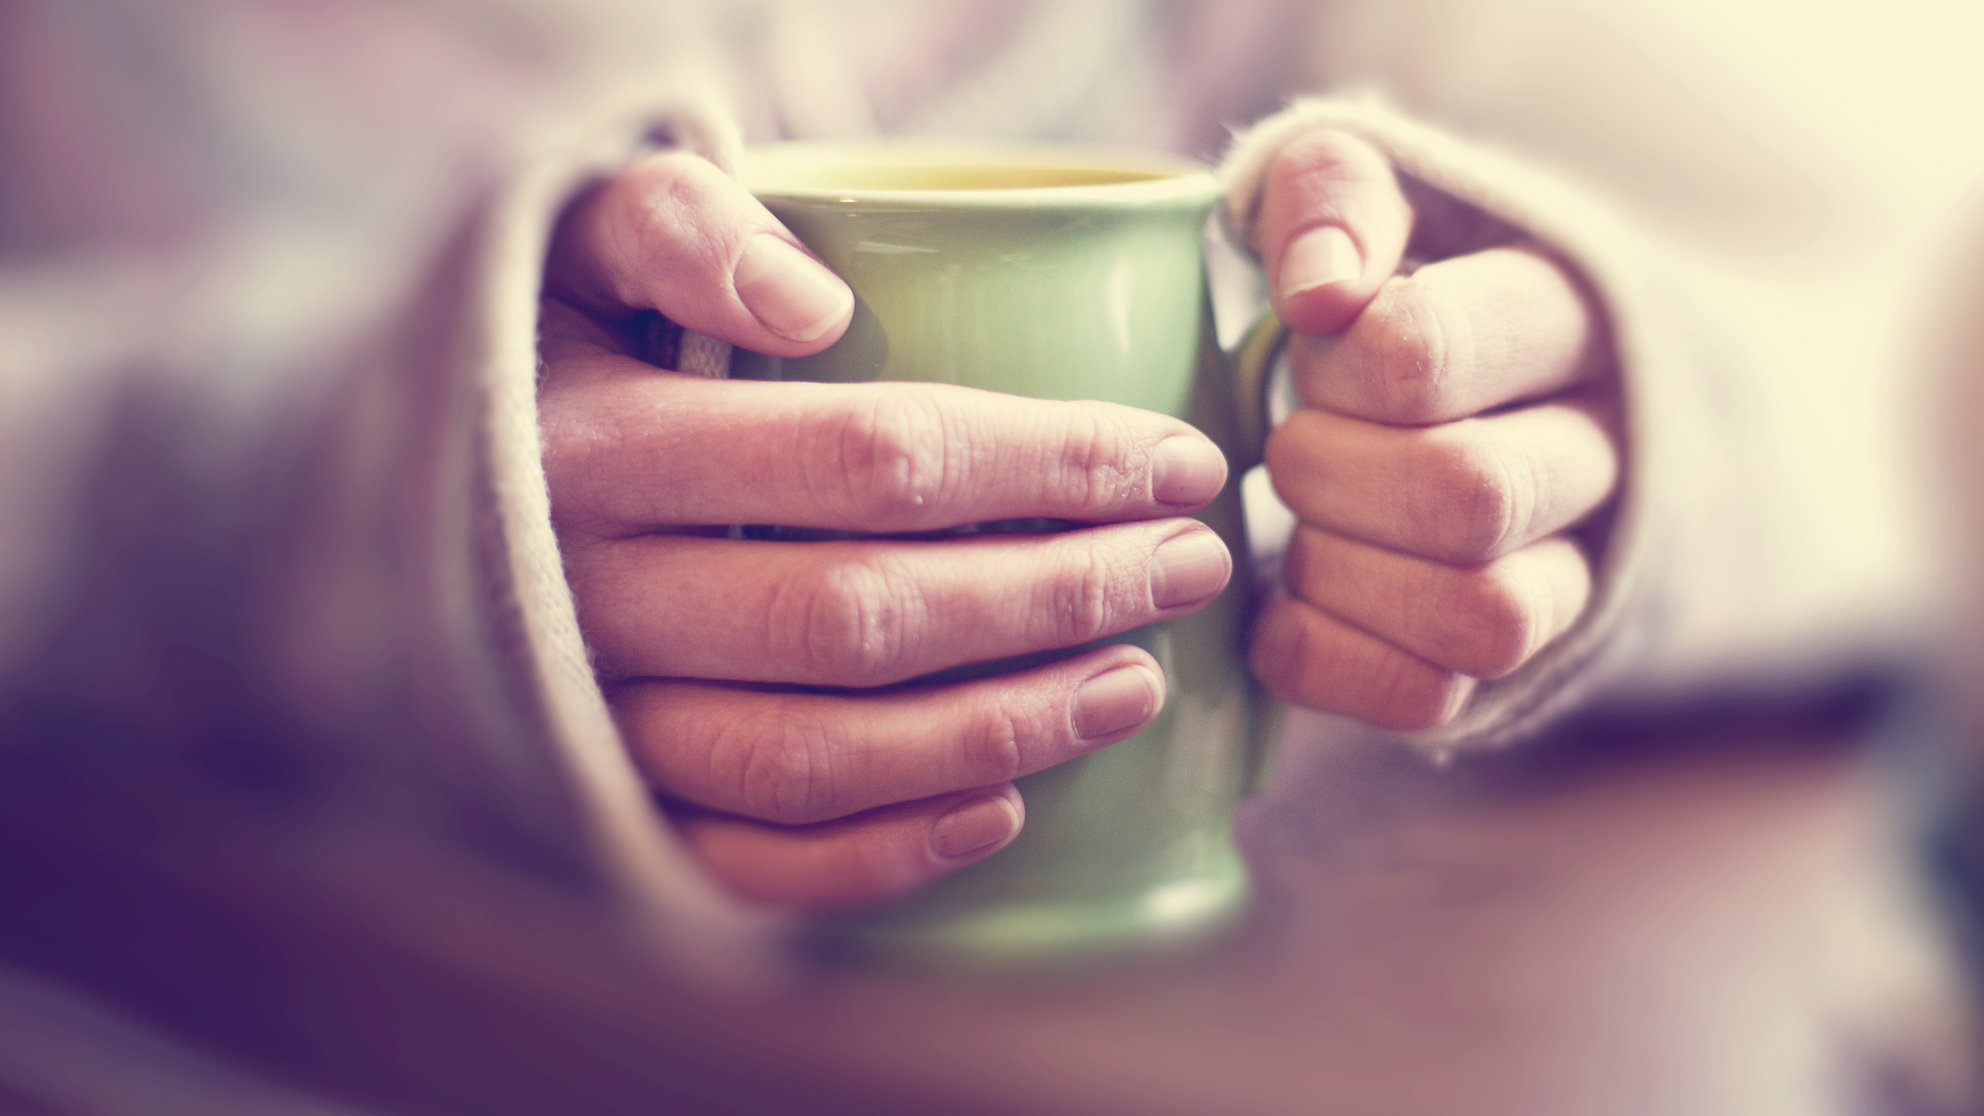 Cozy with Coffee Cup